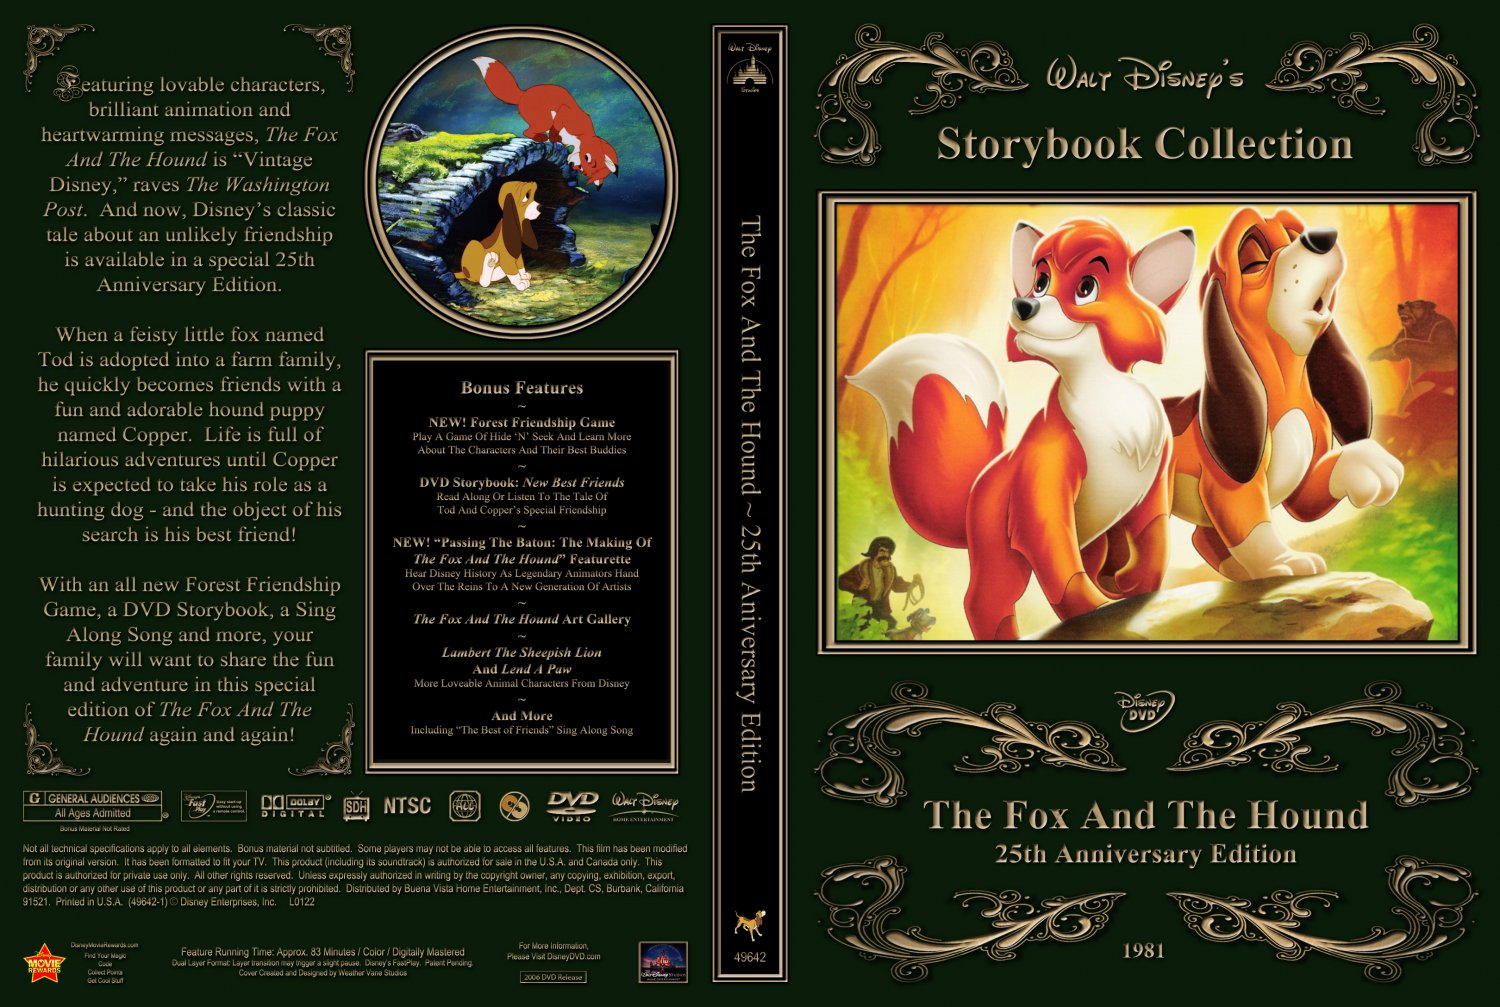 The Fox And The Hound - Movie DVD Custom Covers